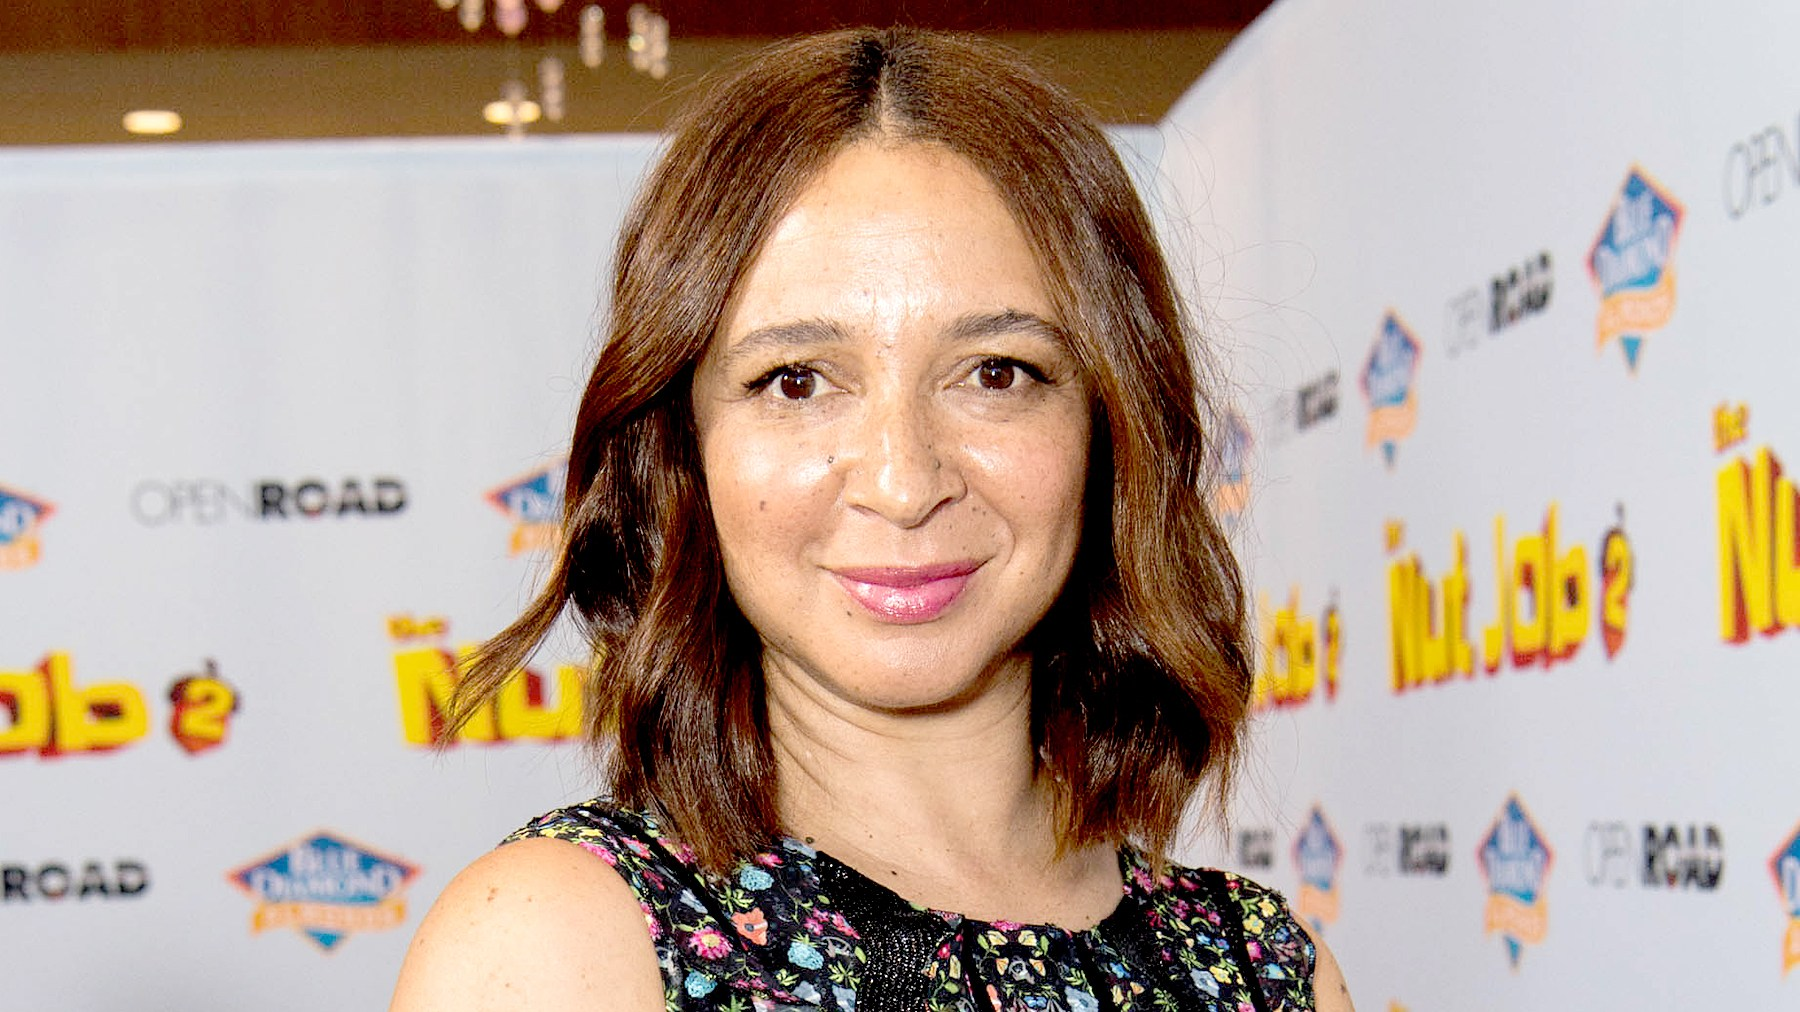 Maya Rudolph attends the premiere of Open Road Films' 'The Nut Job 2: Nutty by Nature' at Regal Cinemas L.A. Live on August 5, 2017 in Los Angeles, California.